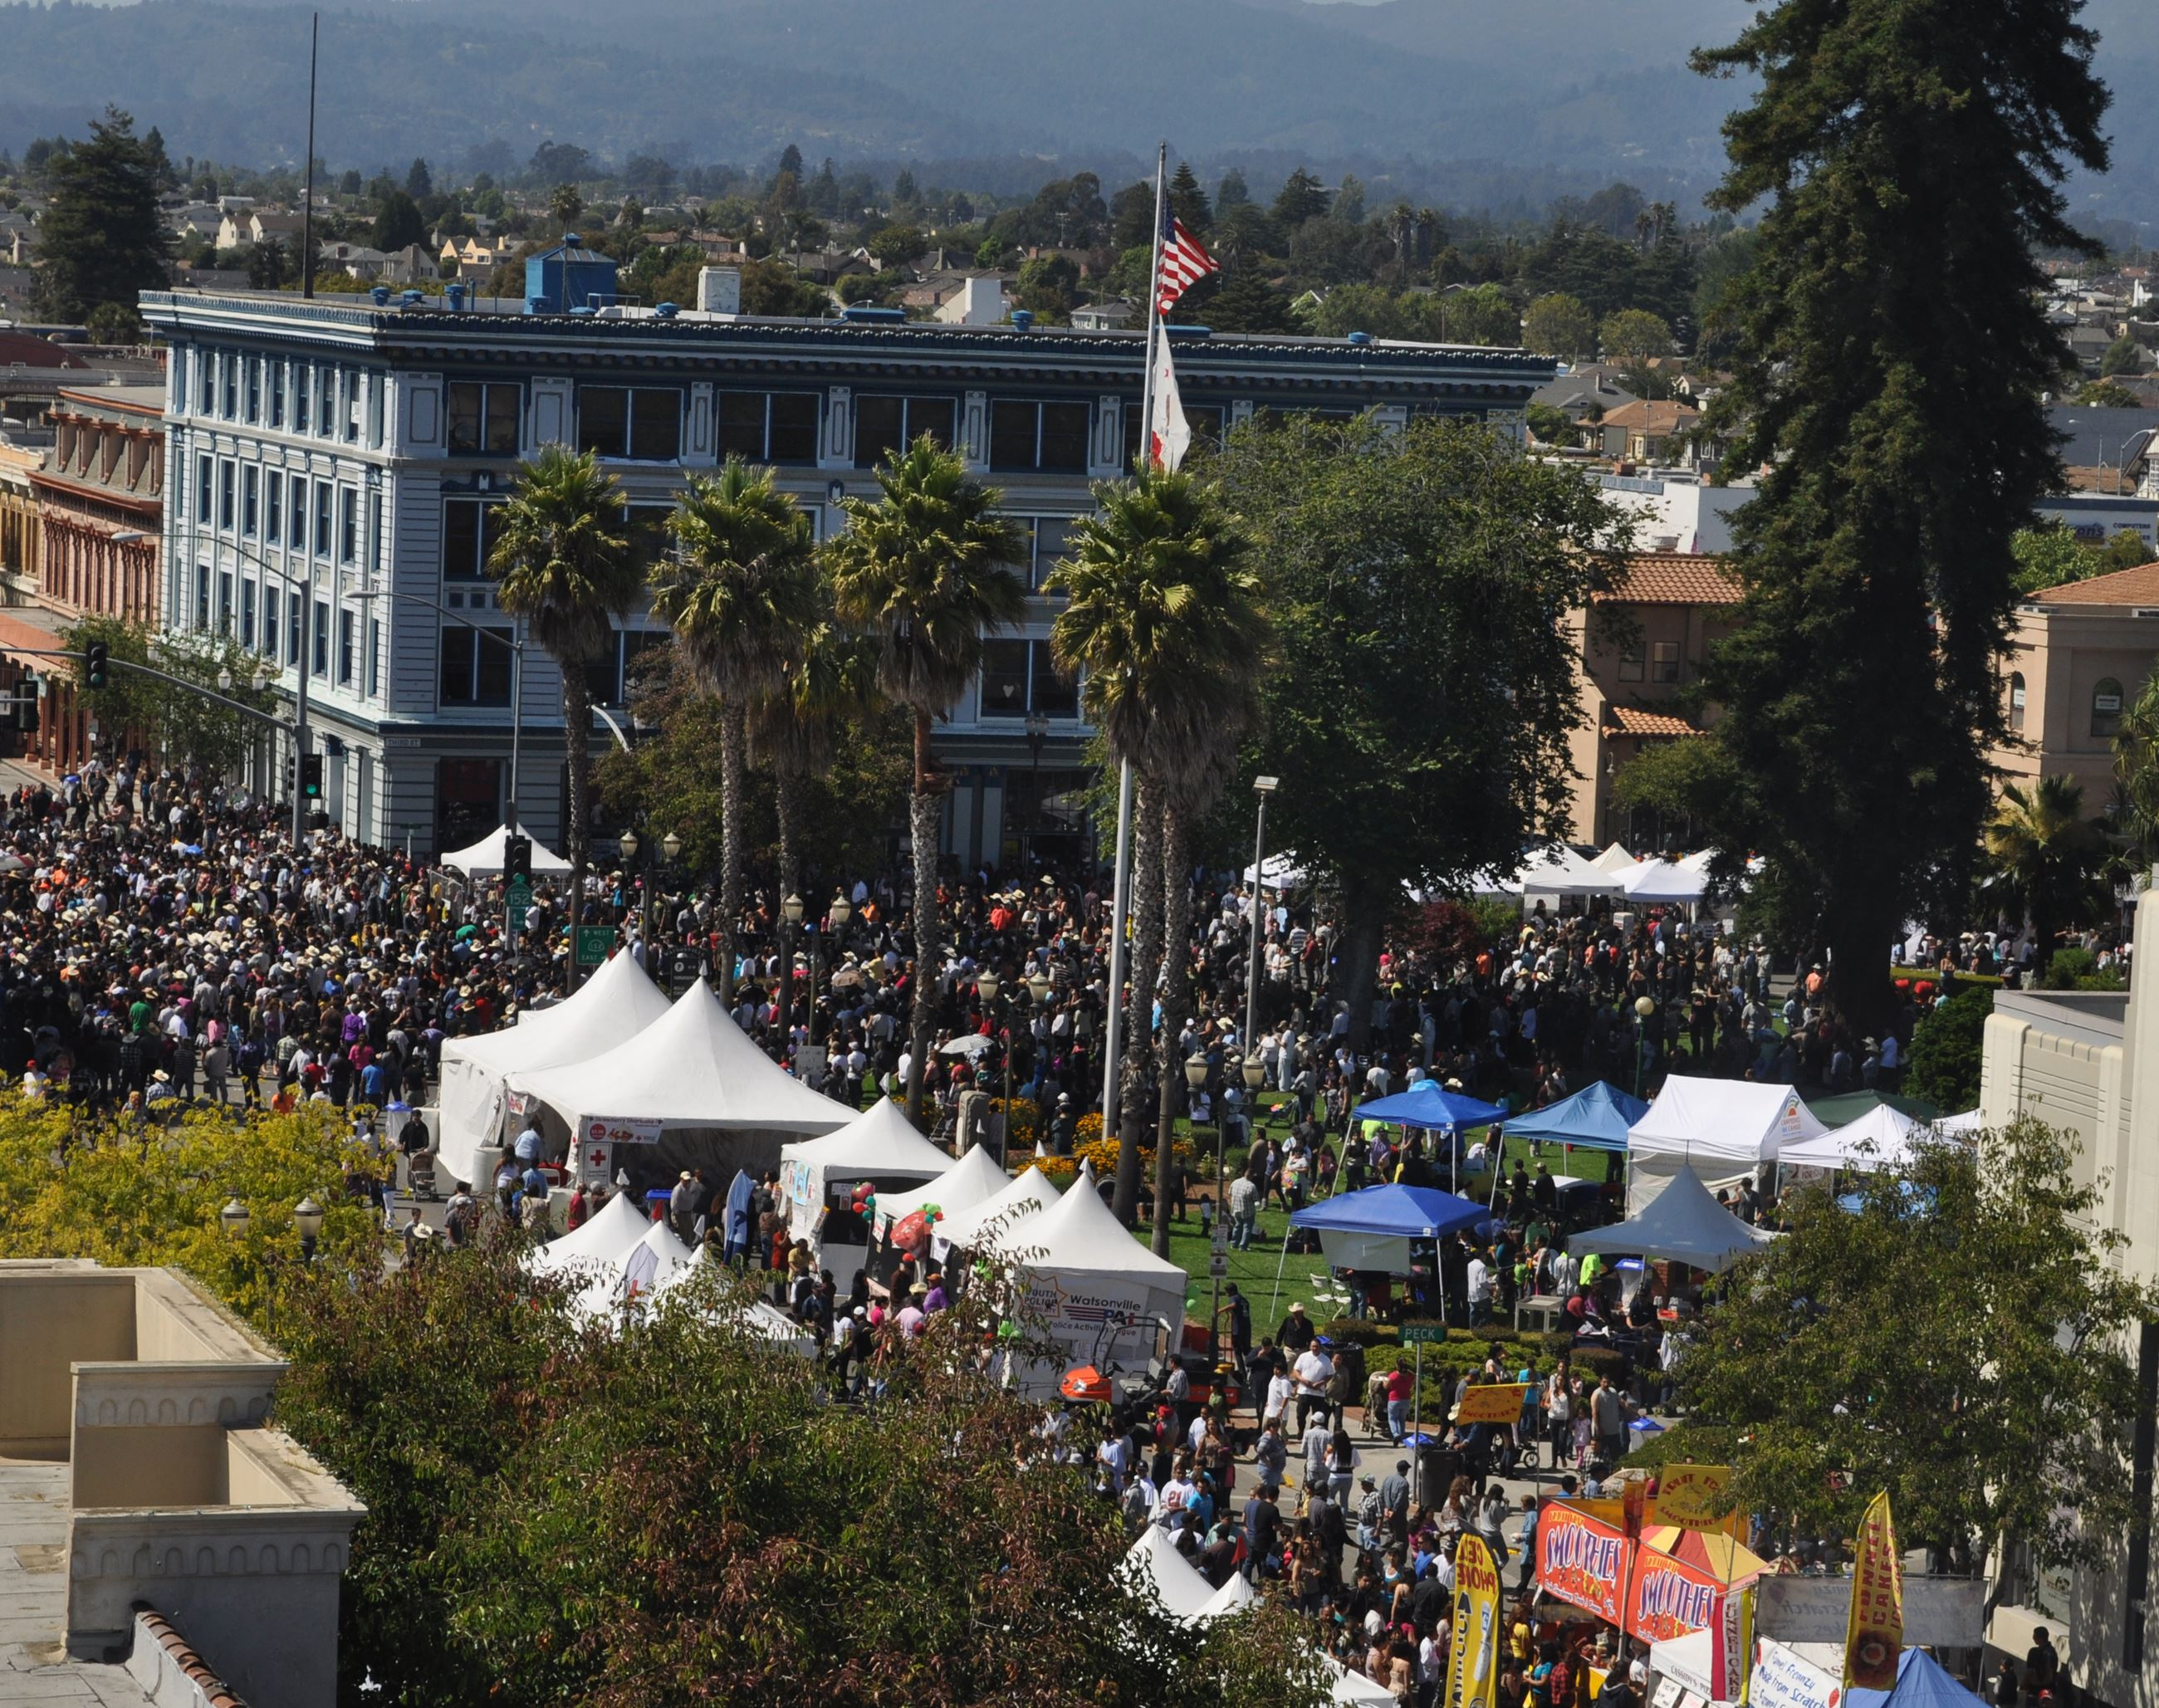 Photo of an event with a large crowd of people and tented booth areas